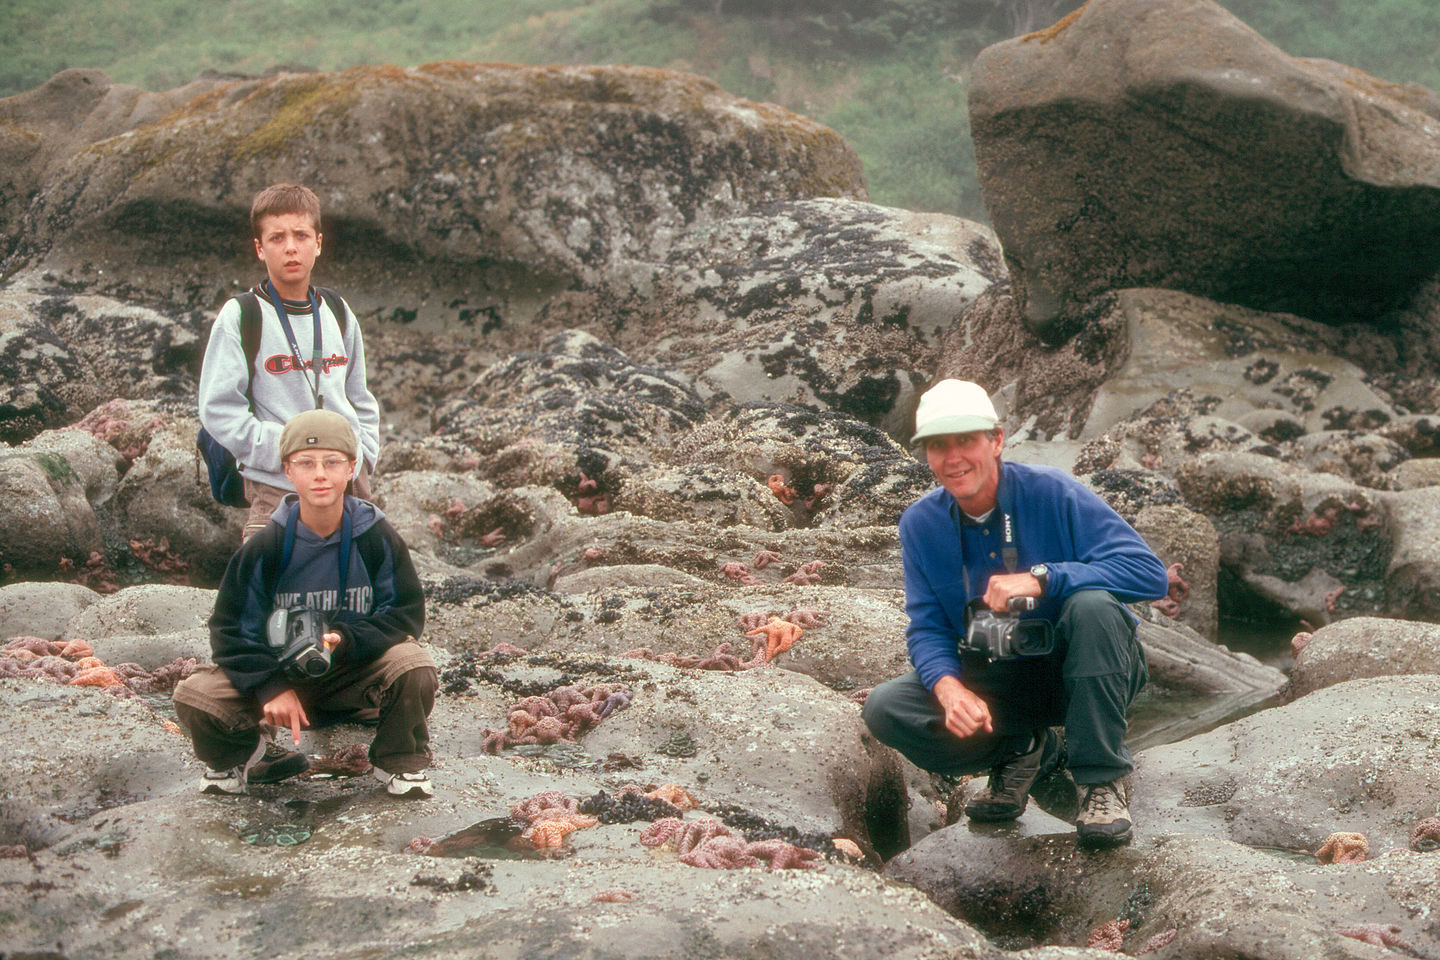 Herb and boys by tidal pools